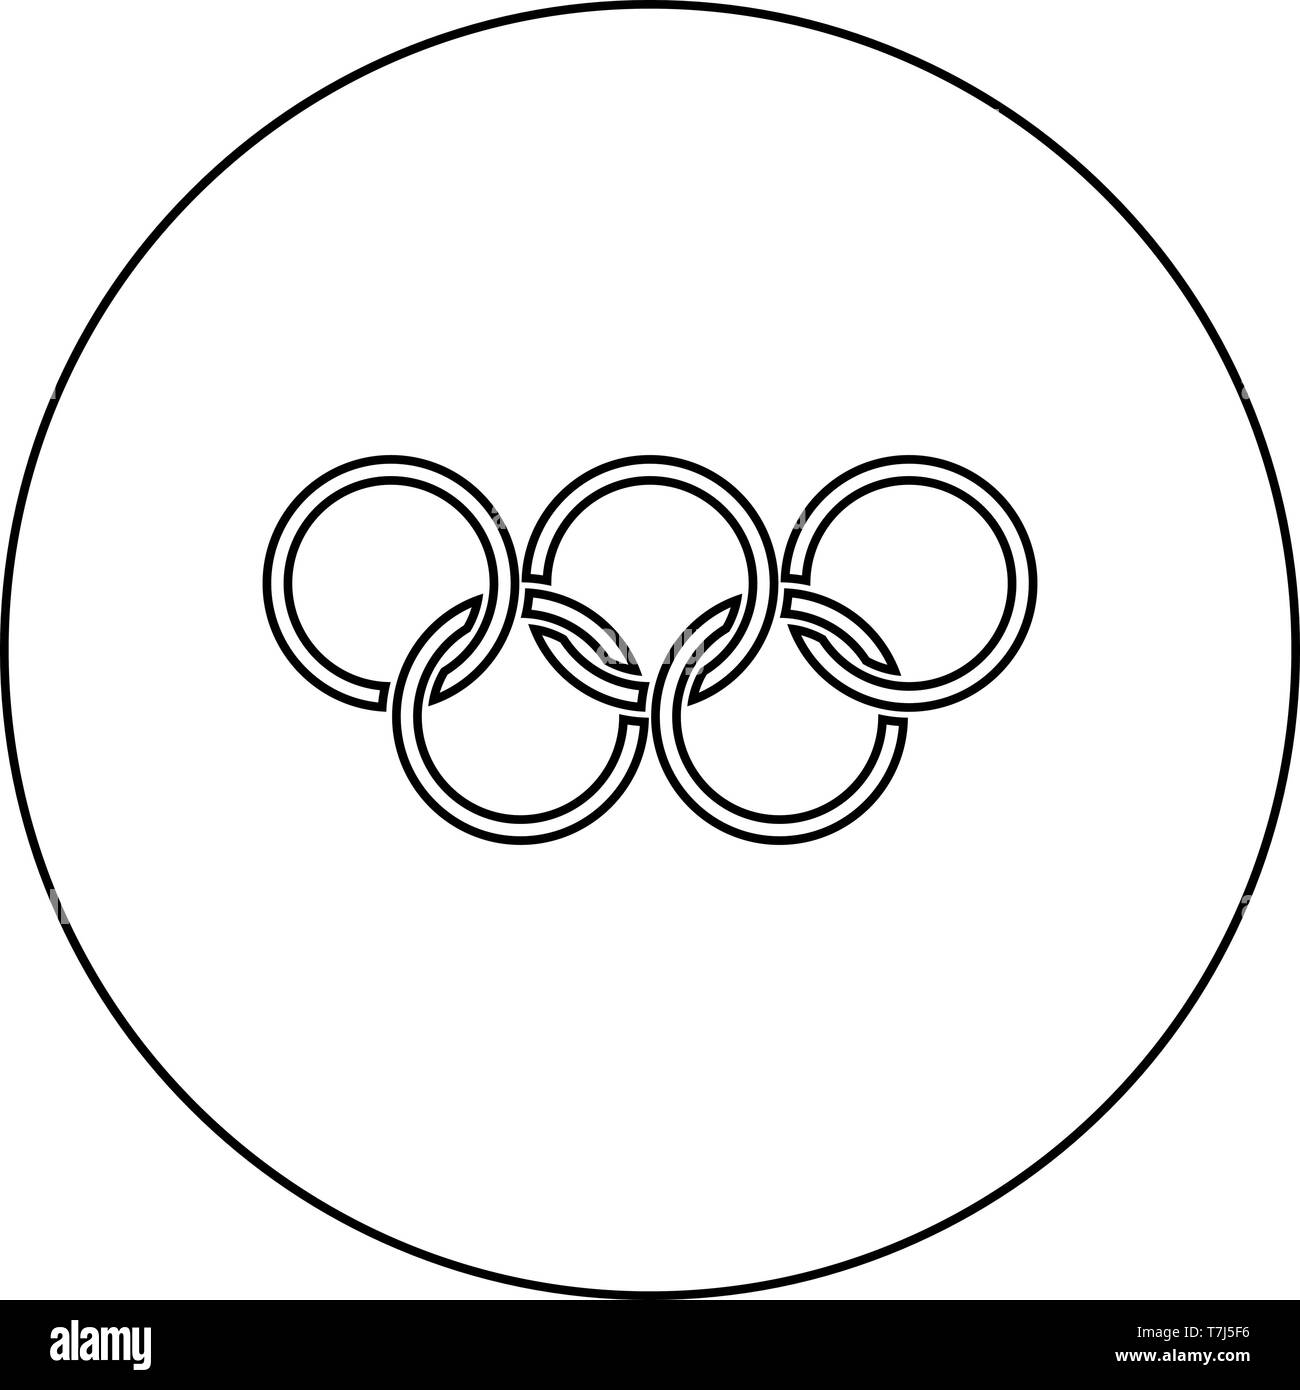 Olympic rings Five Olympic rings icon in circle round outline black color vector illustration flat style simple image - Stock Vector